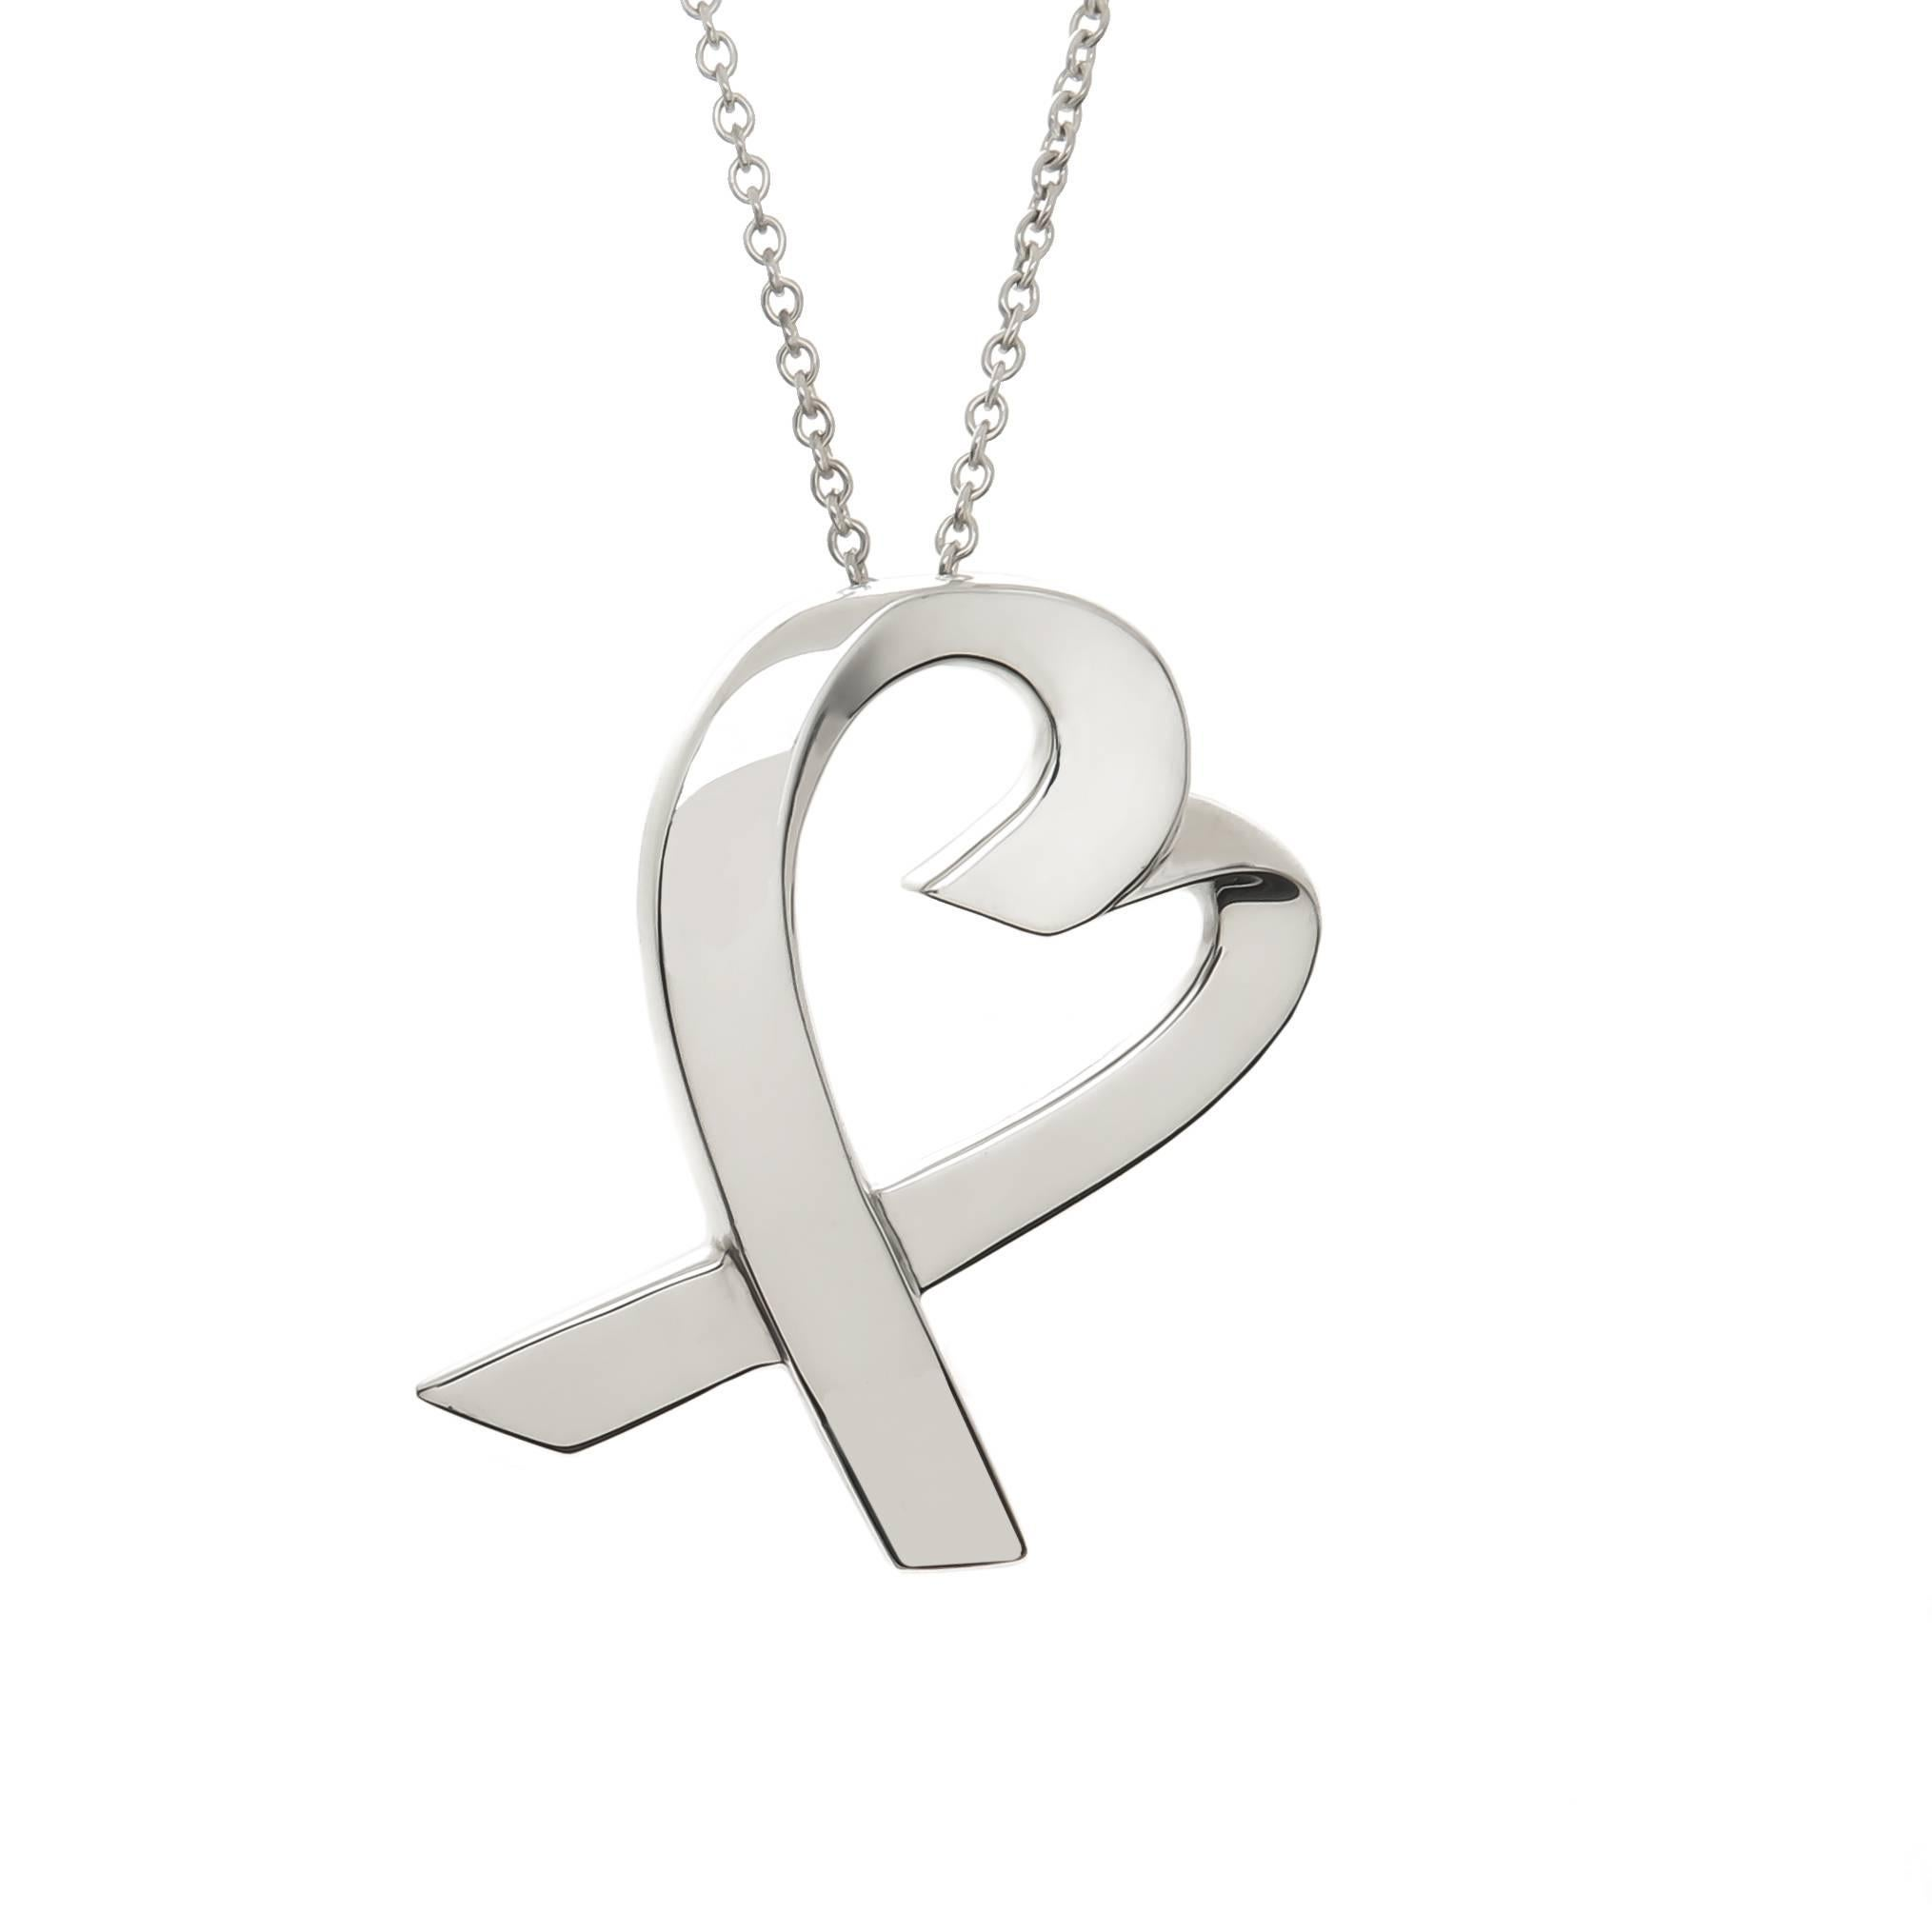 Paloma picasso tiffany and co large silver loving heart necklace paloma picasso tiffany and co large silver loving heart necklace for sale at 1stdibs aloadofball Image collections